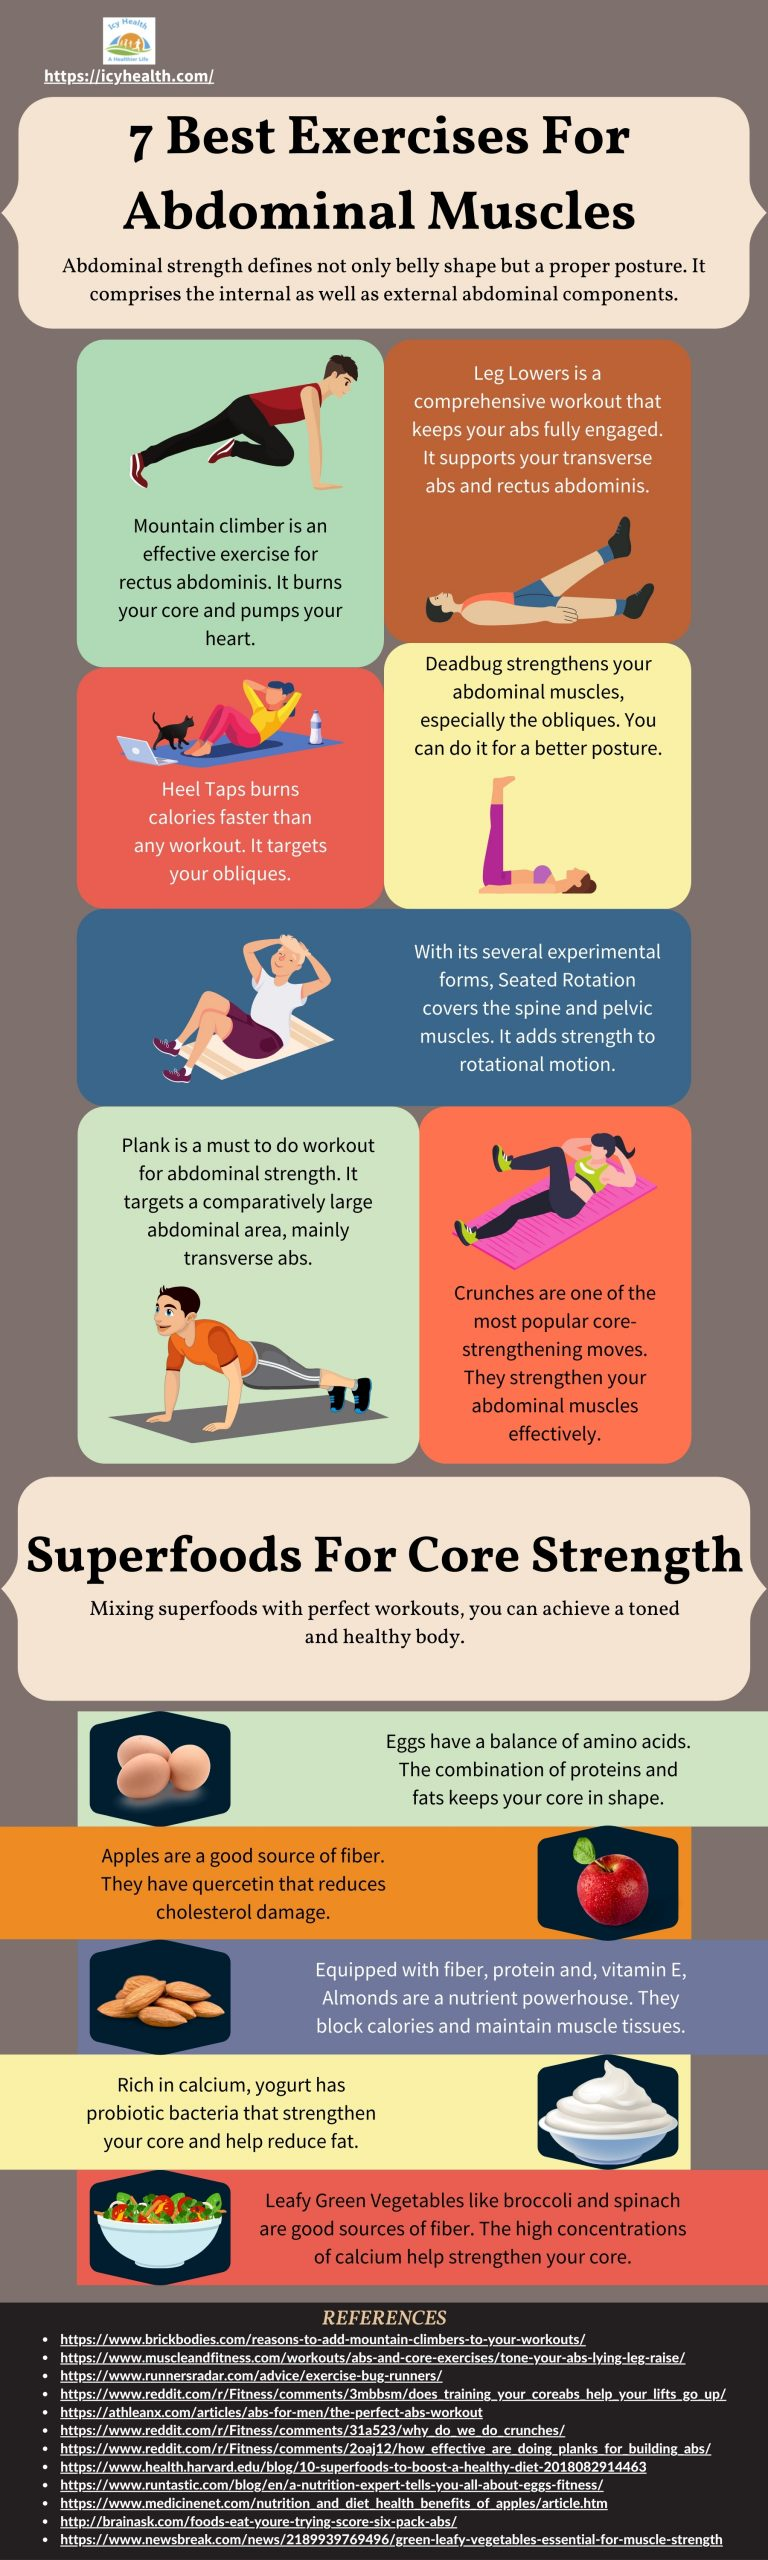 7 Best Exercises For Abdominal Muscles